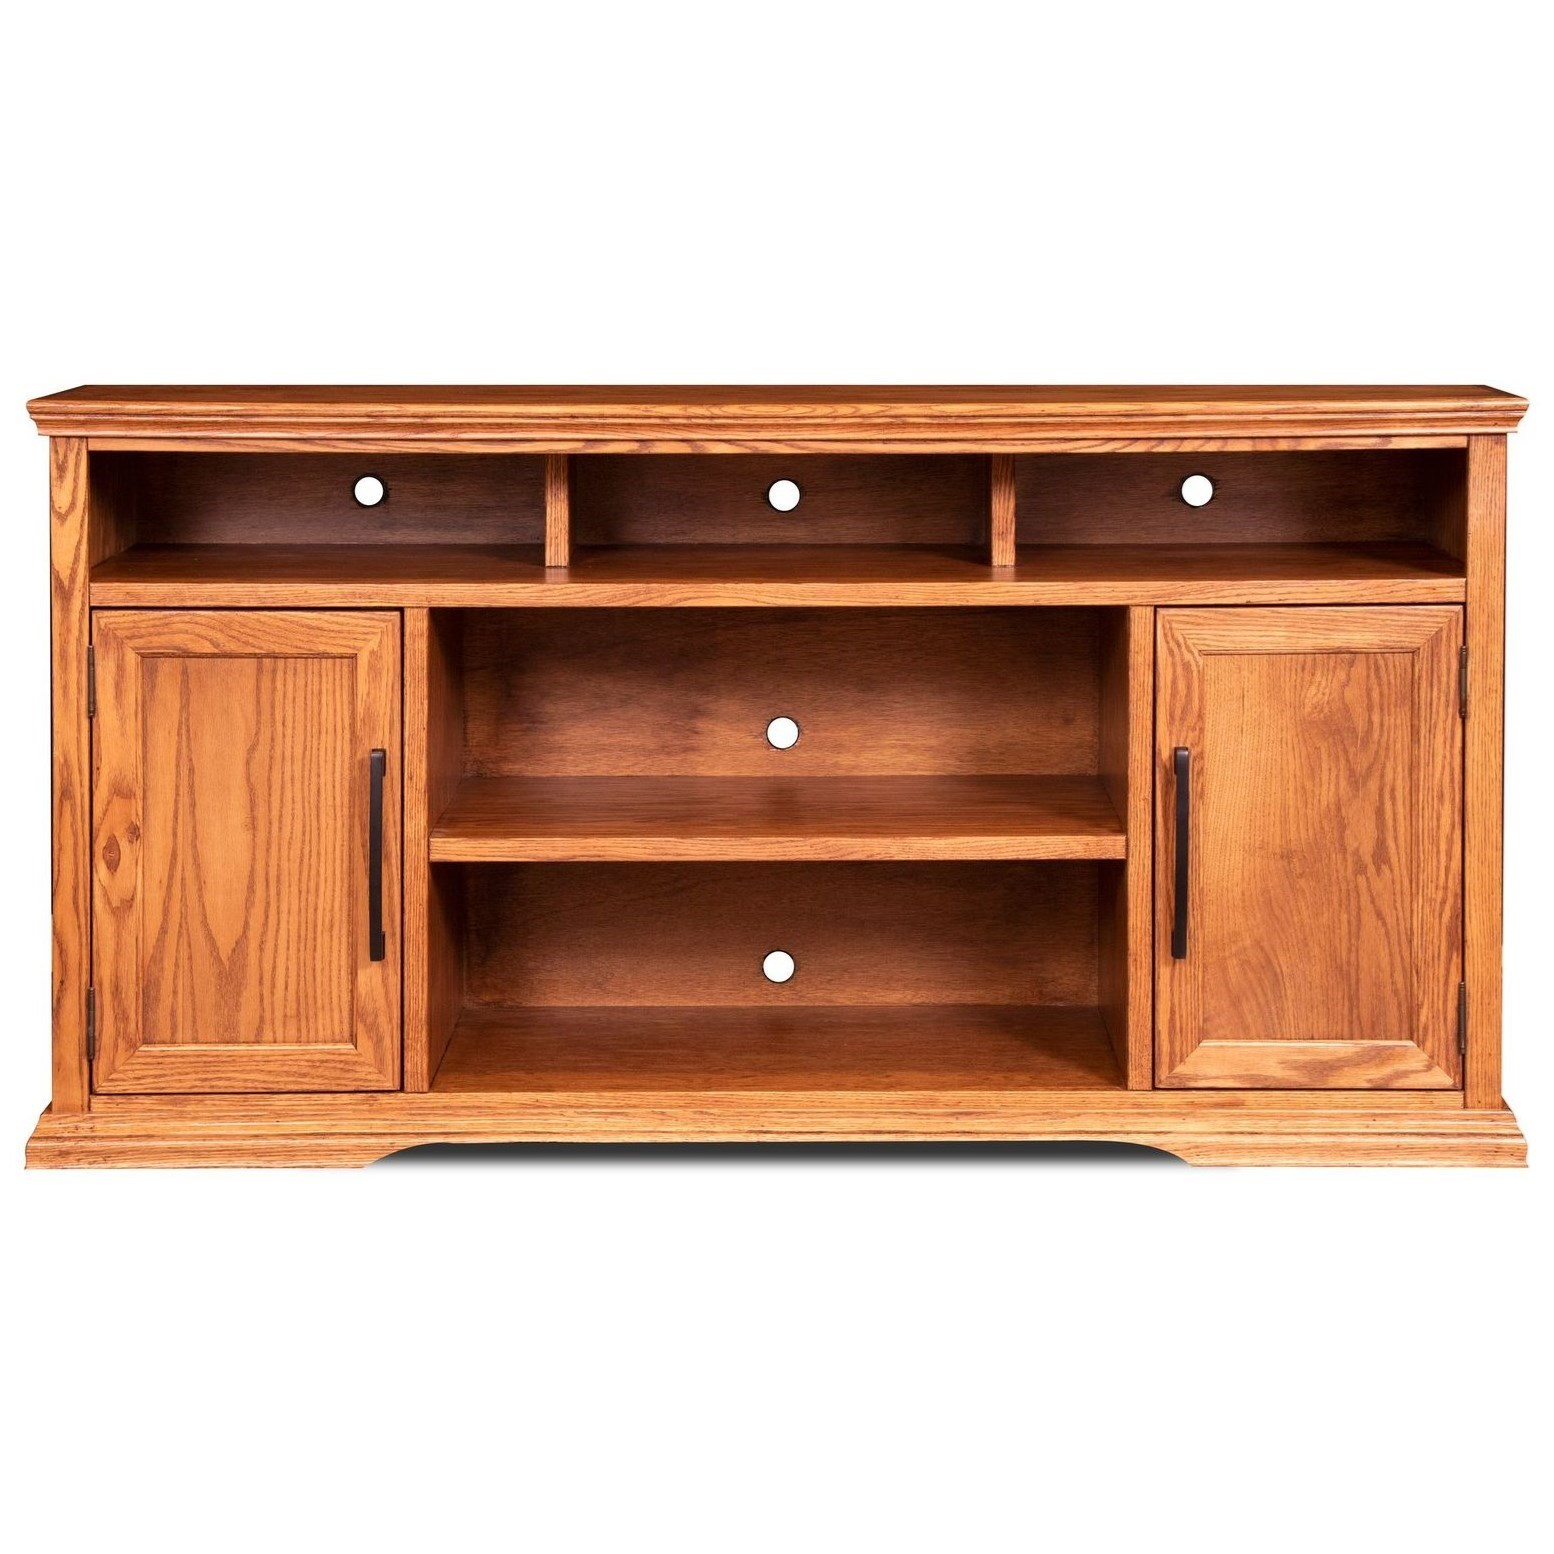 "Colonial Place 62"" Console by Legends Furniture at Home Furnishings Direct"